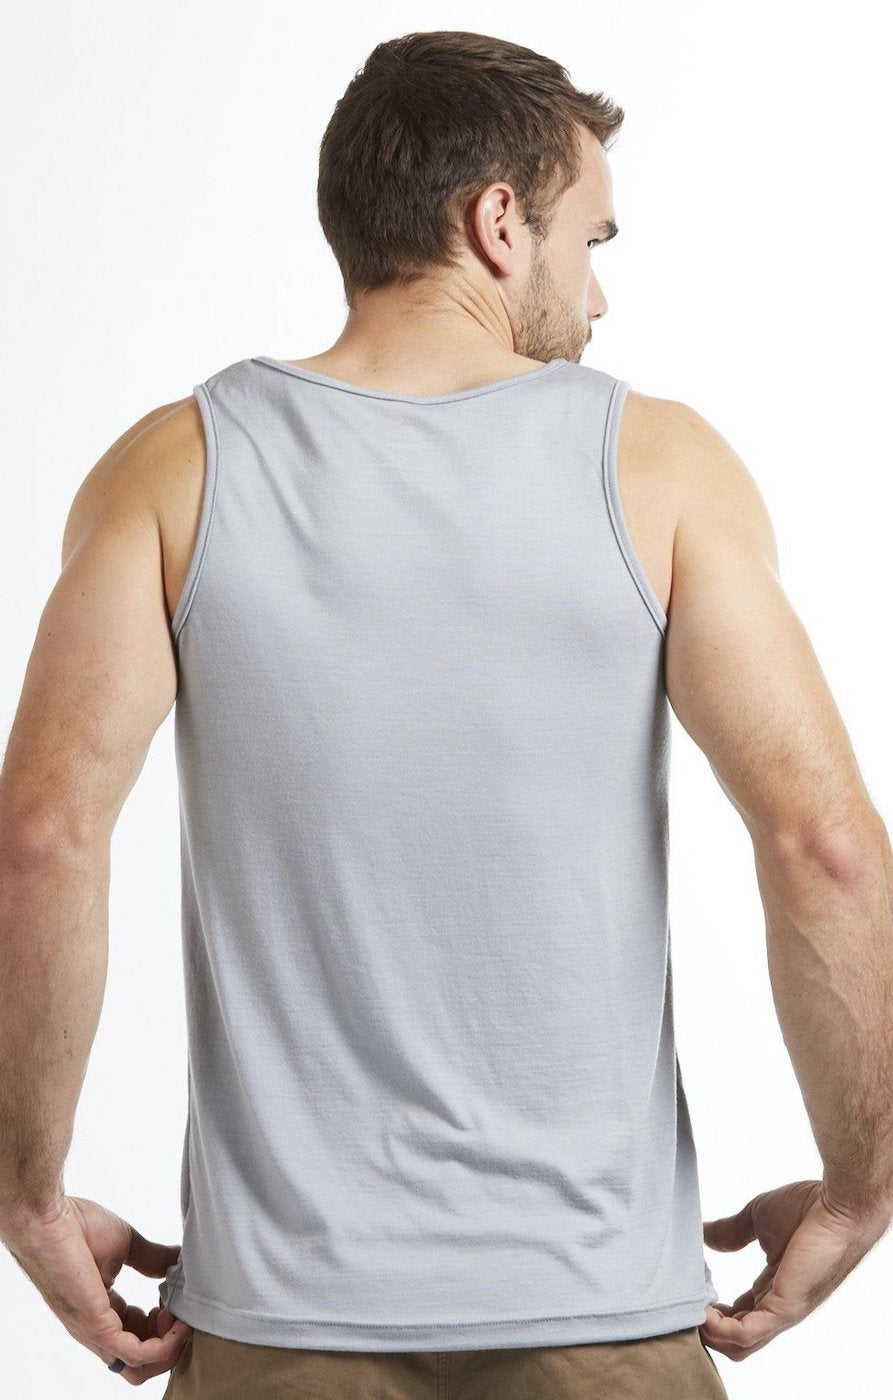 Men's Merino Wool Tank Top - Grey